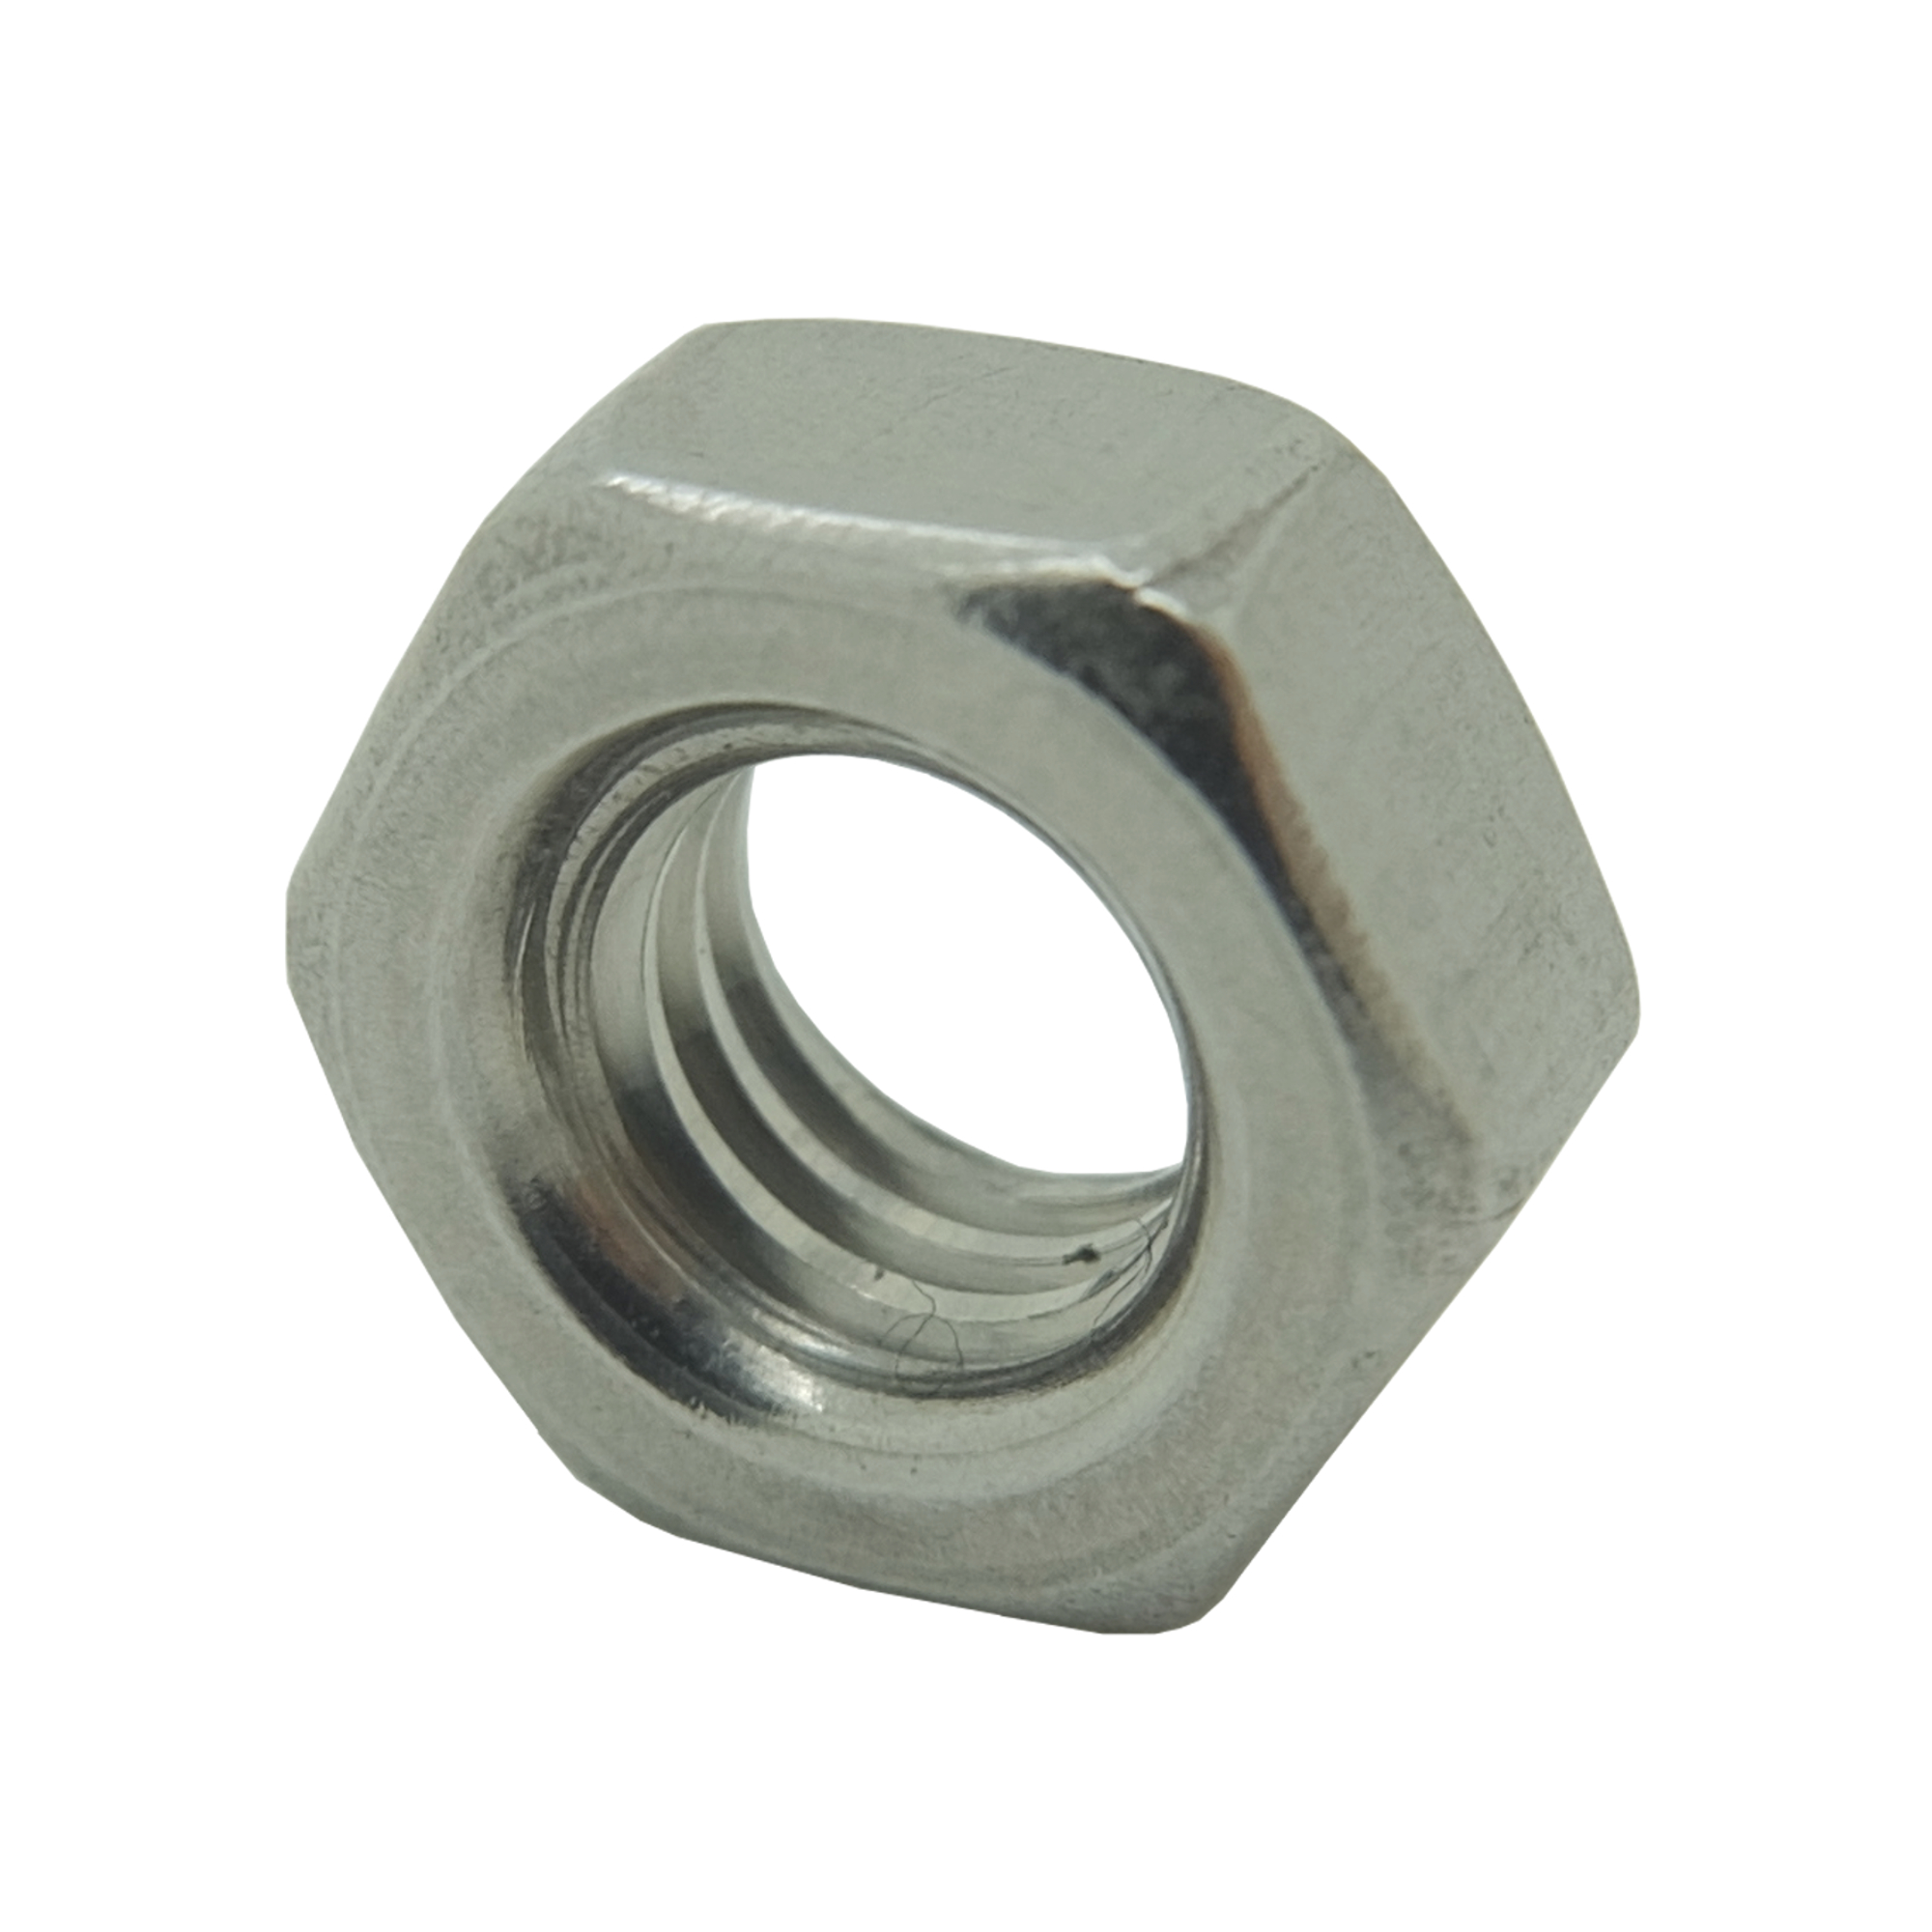 M8 RH A4-AISI 316 Stainless Steel DIN 934 Hexagon Nut